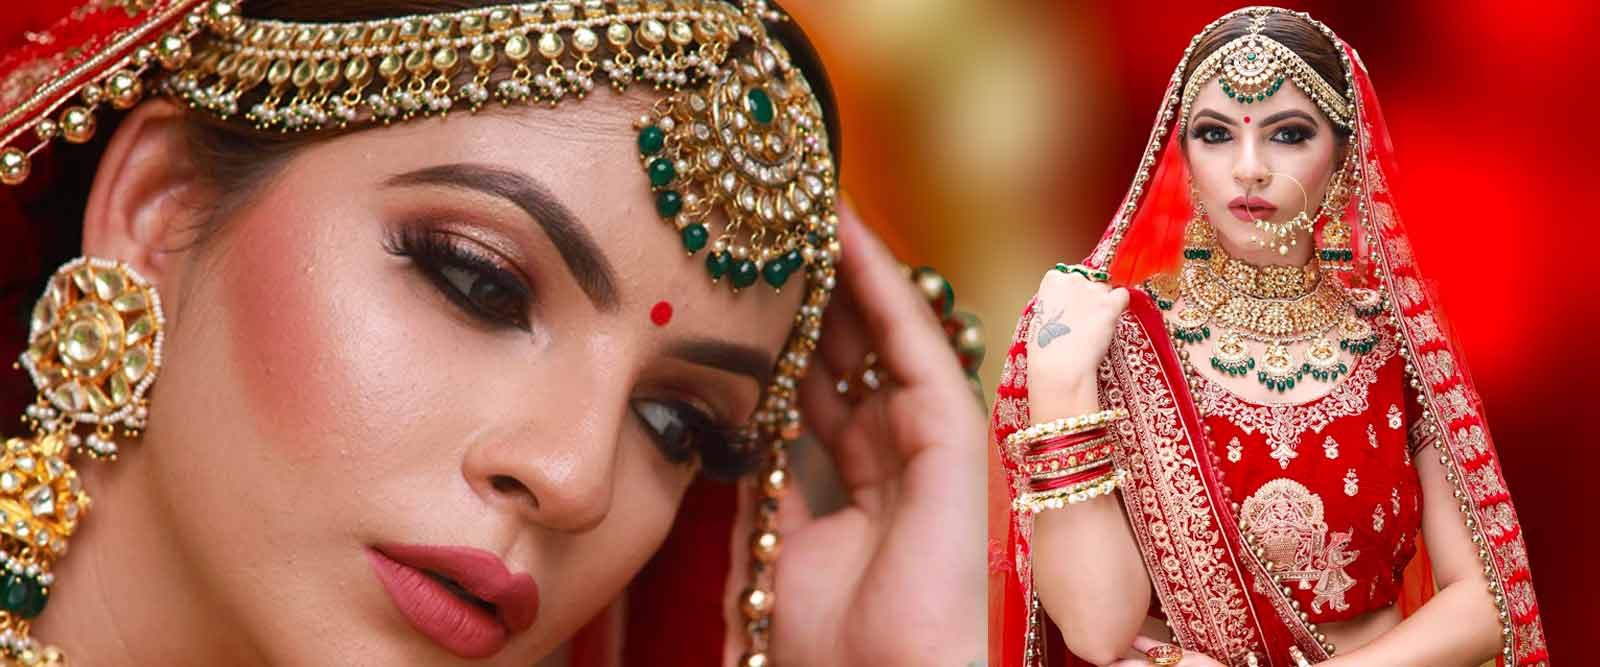 Wedding Makeup Artist in Sarai Kale Khan